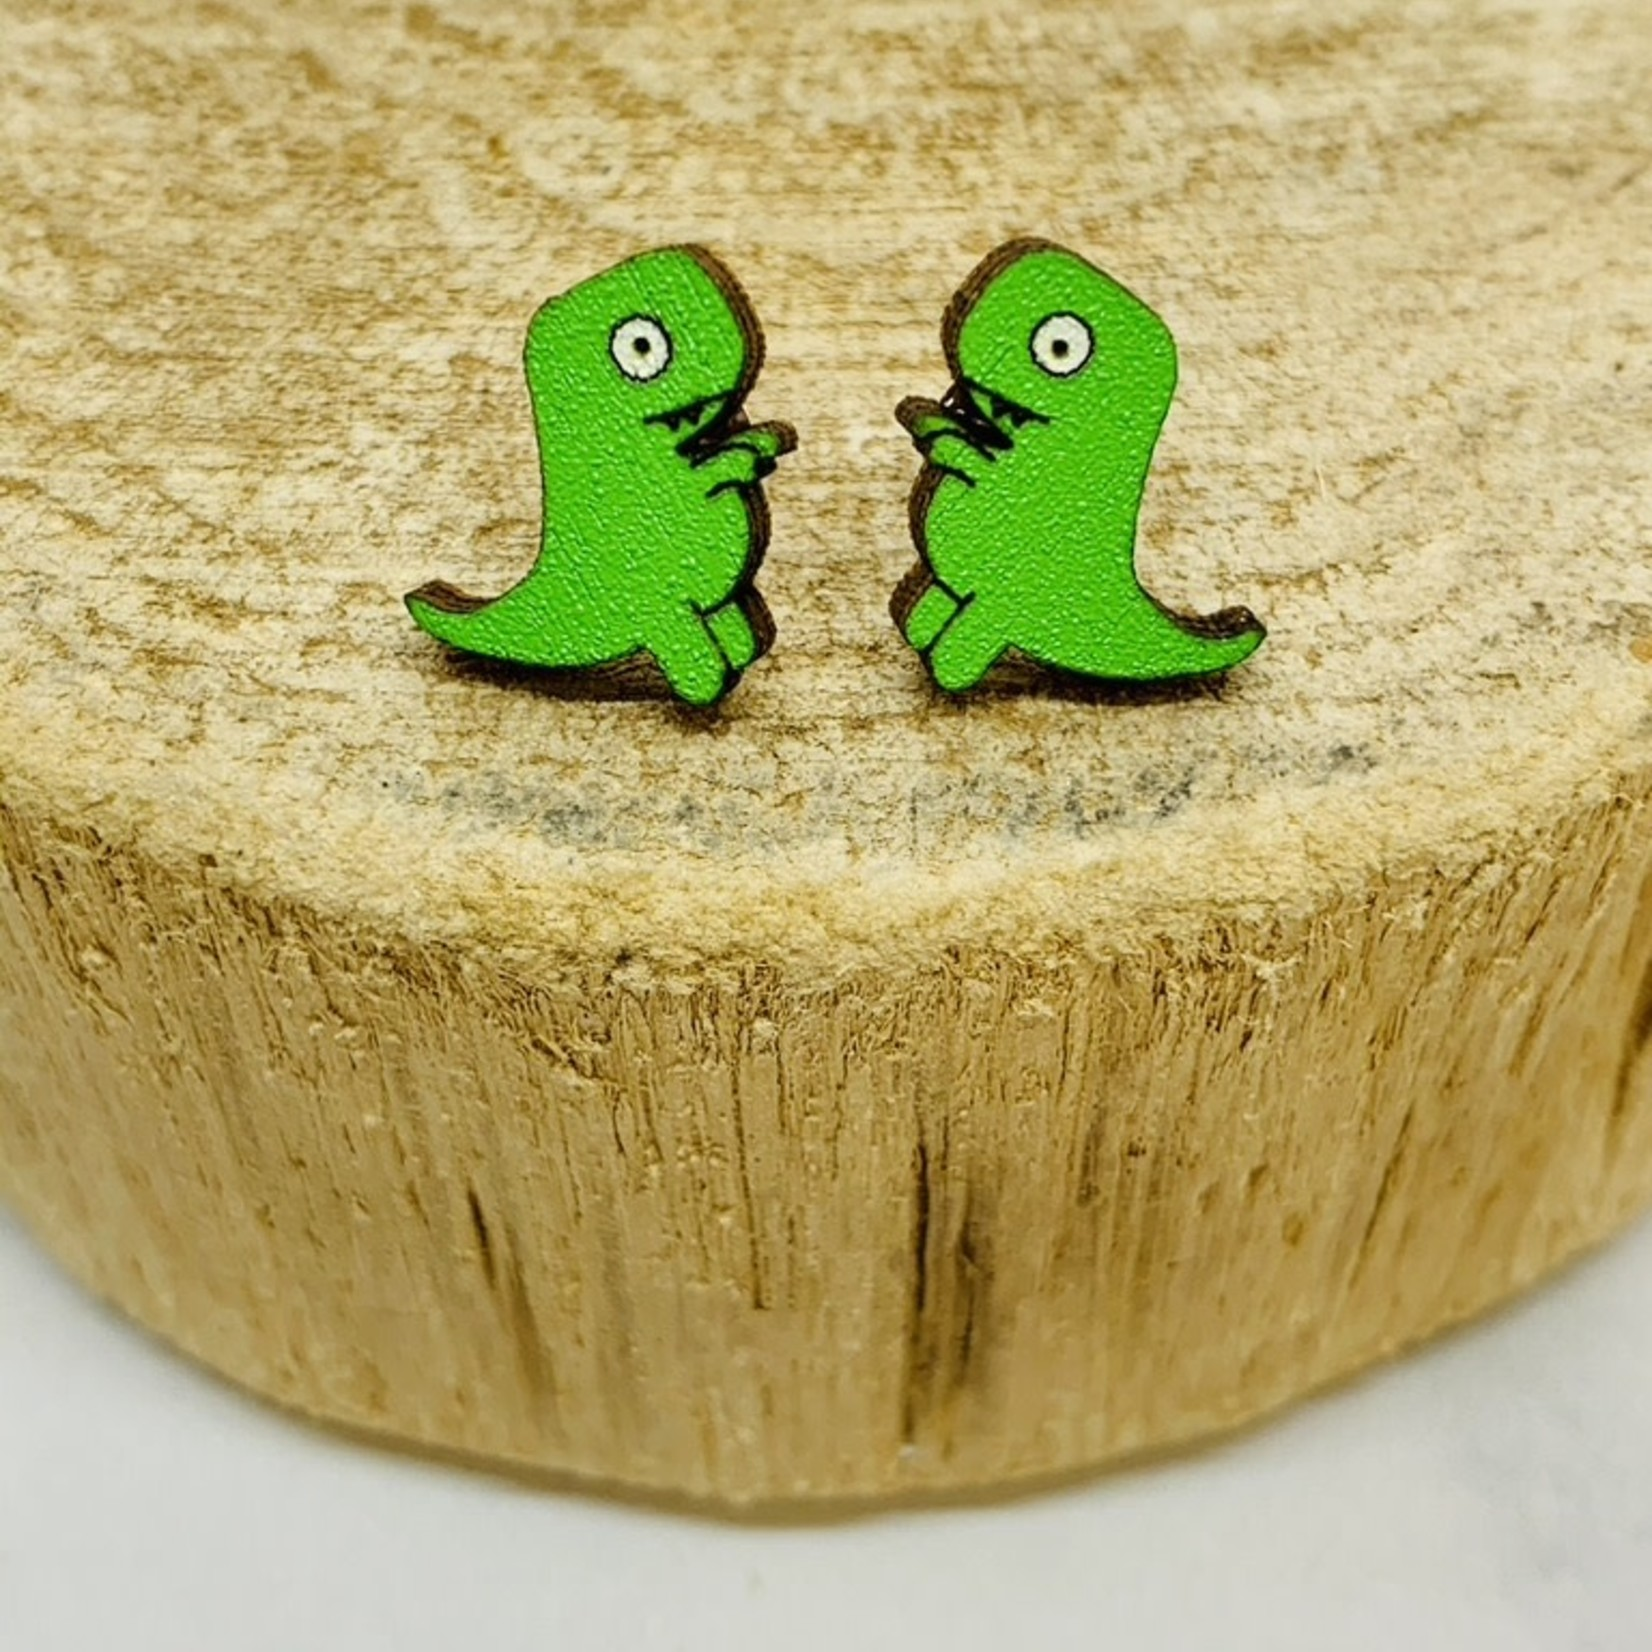 Handmade Short Arms Trex Dino Lasercut Wood Earrings on Sterling Silver Posts